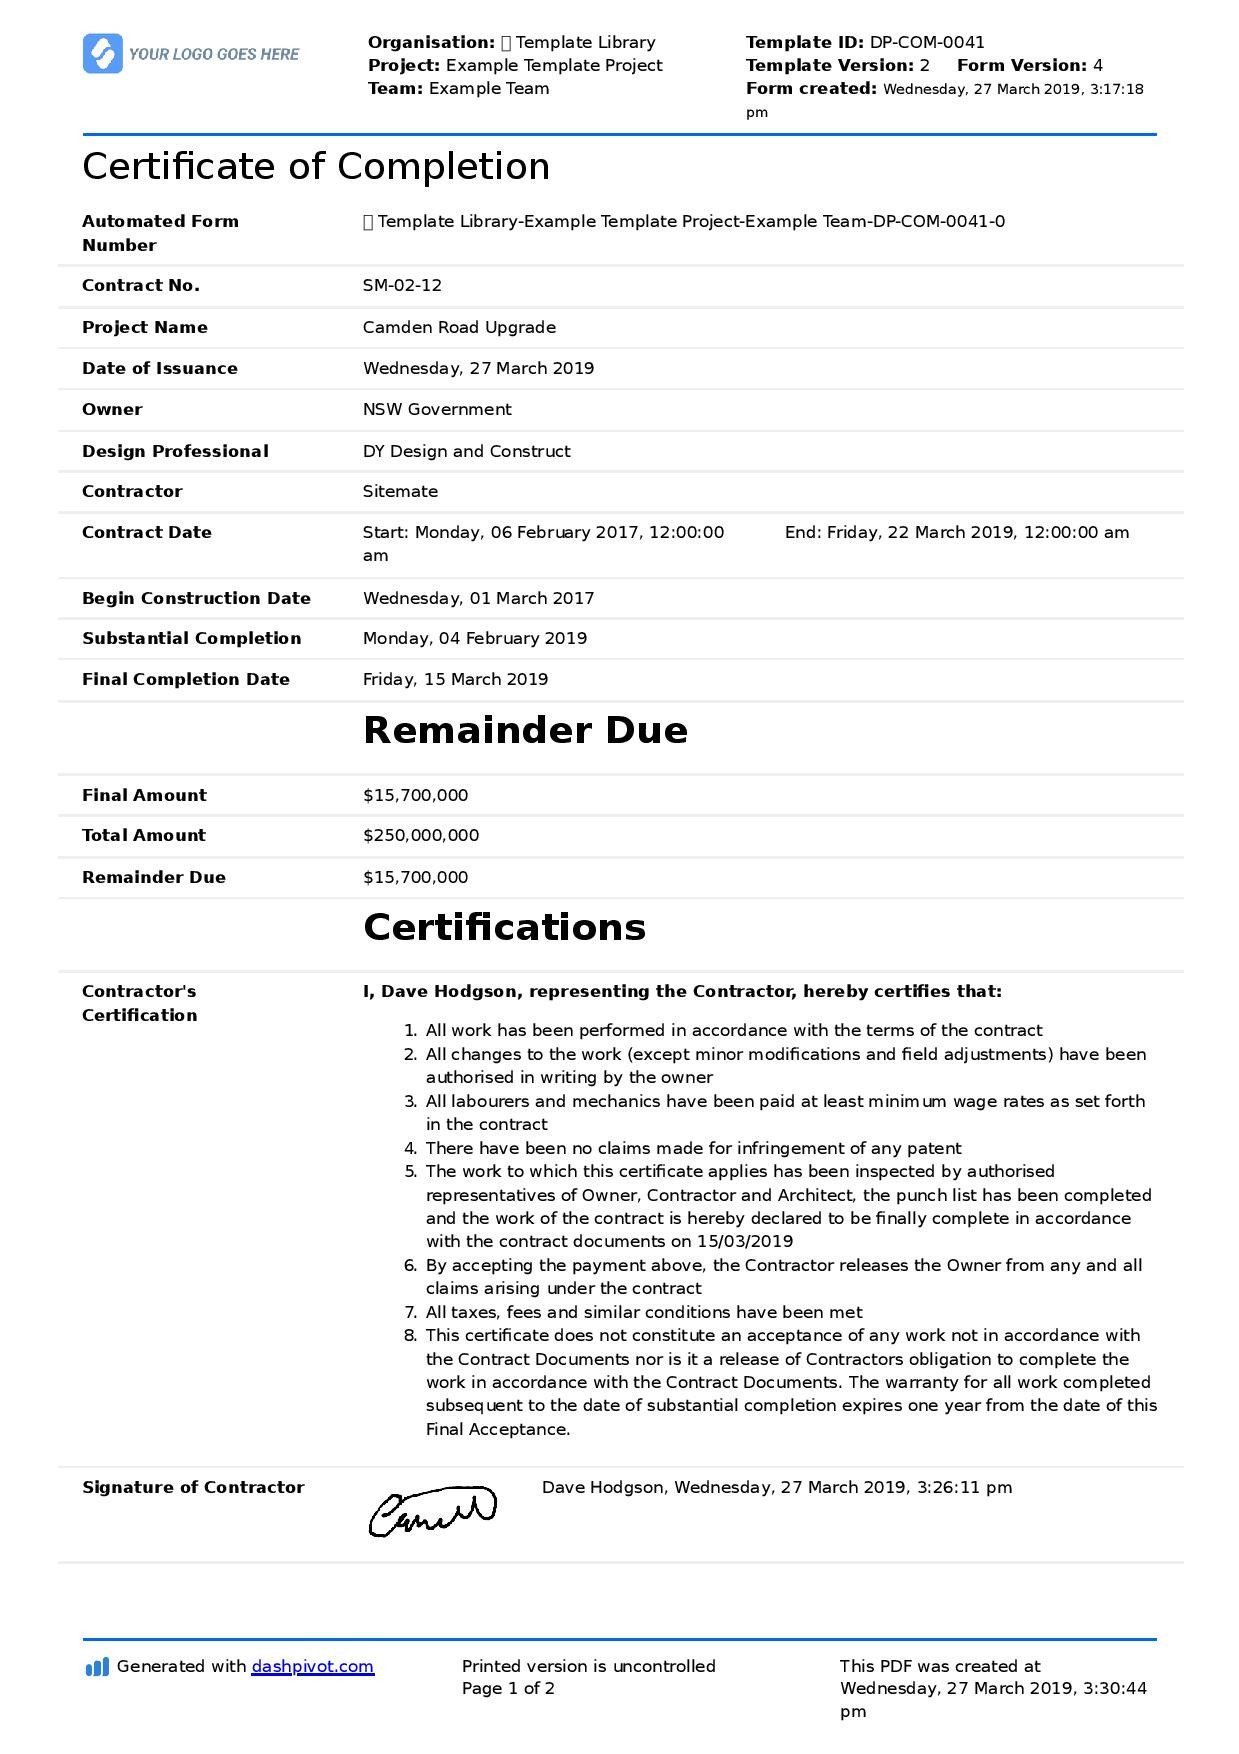 Contractor Certificate Of Completion Templates Certificate Of Pletion for Construction Free Template